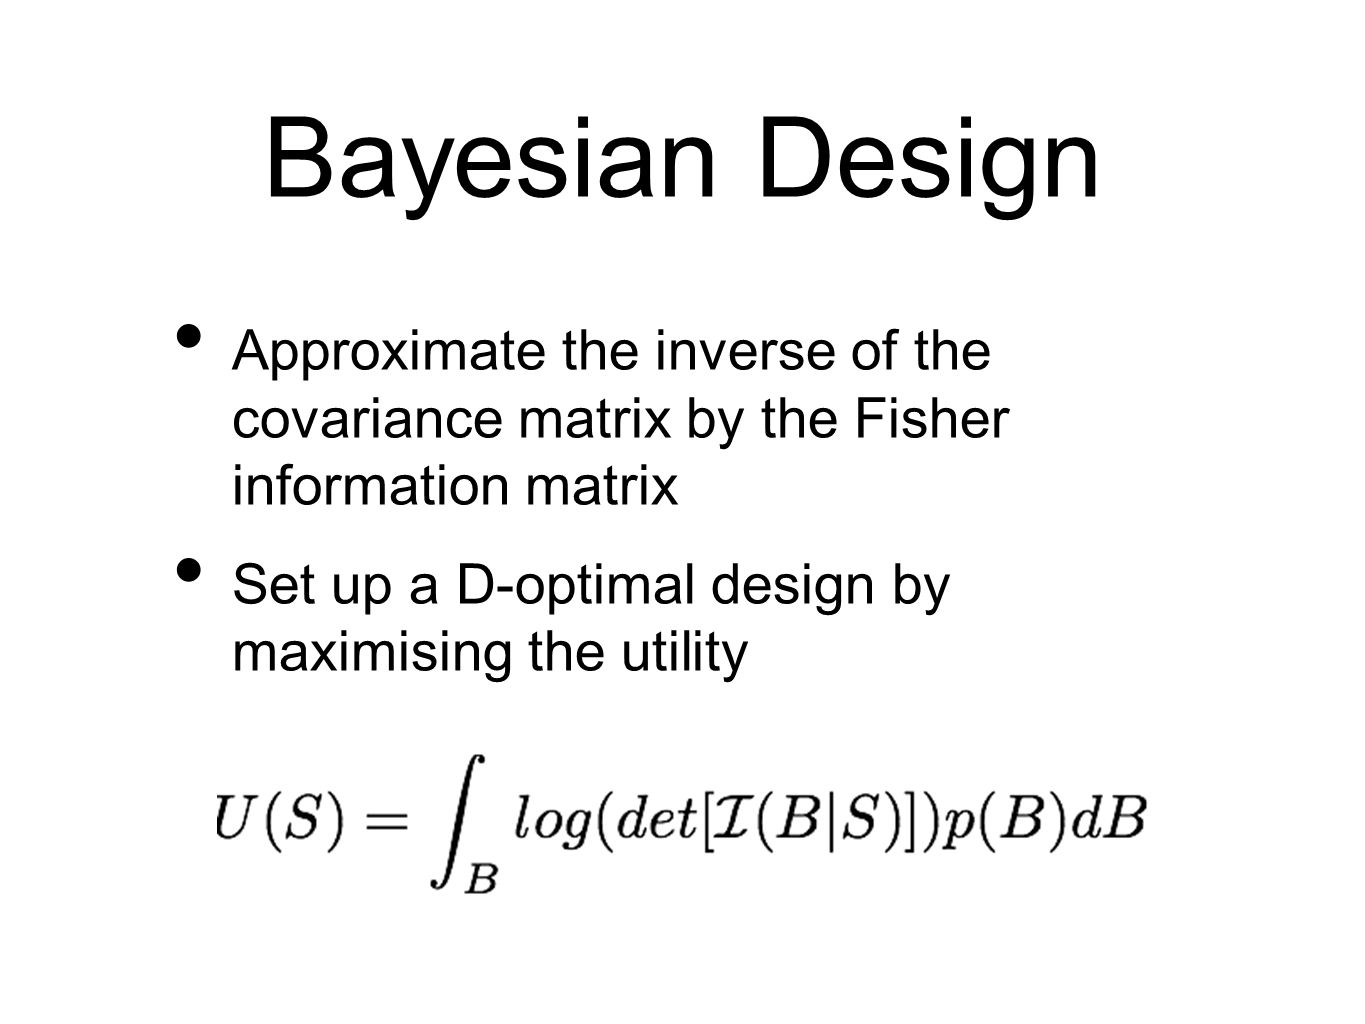 Bayesian Design Approximate the inverse of the covariance matrix by the Fisher information matrix.